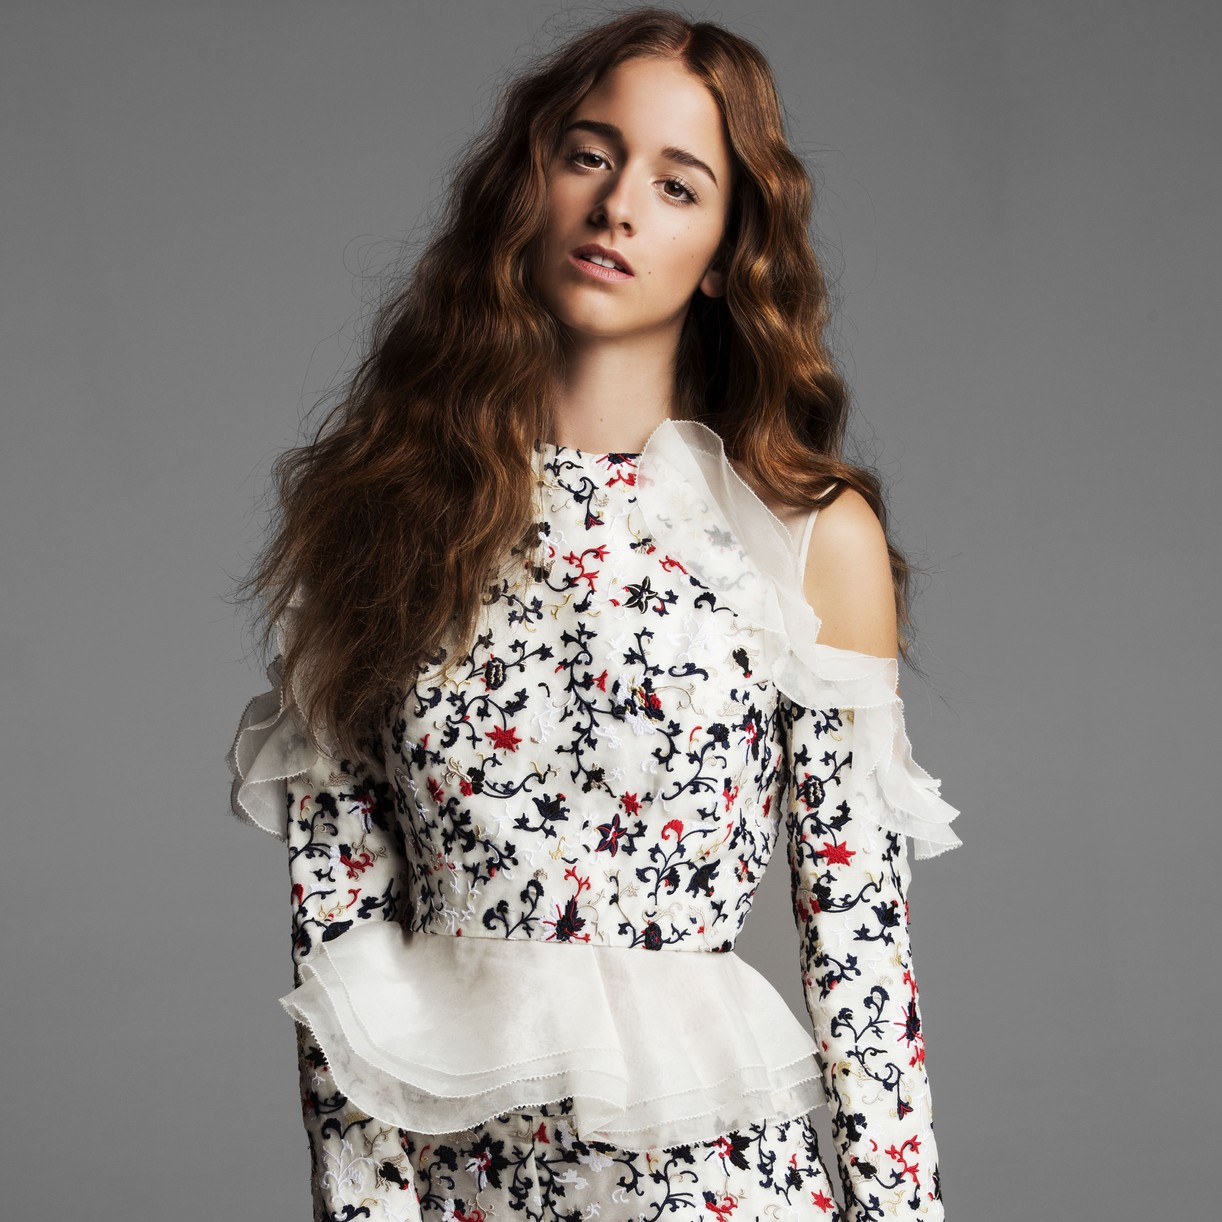 Coco Konig poses in a Huishan Zhang floral top